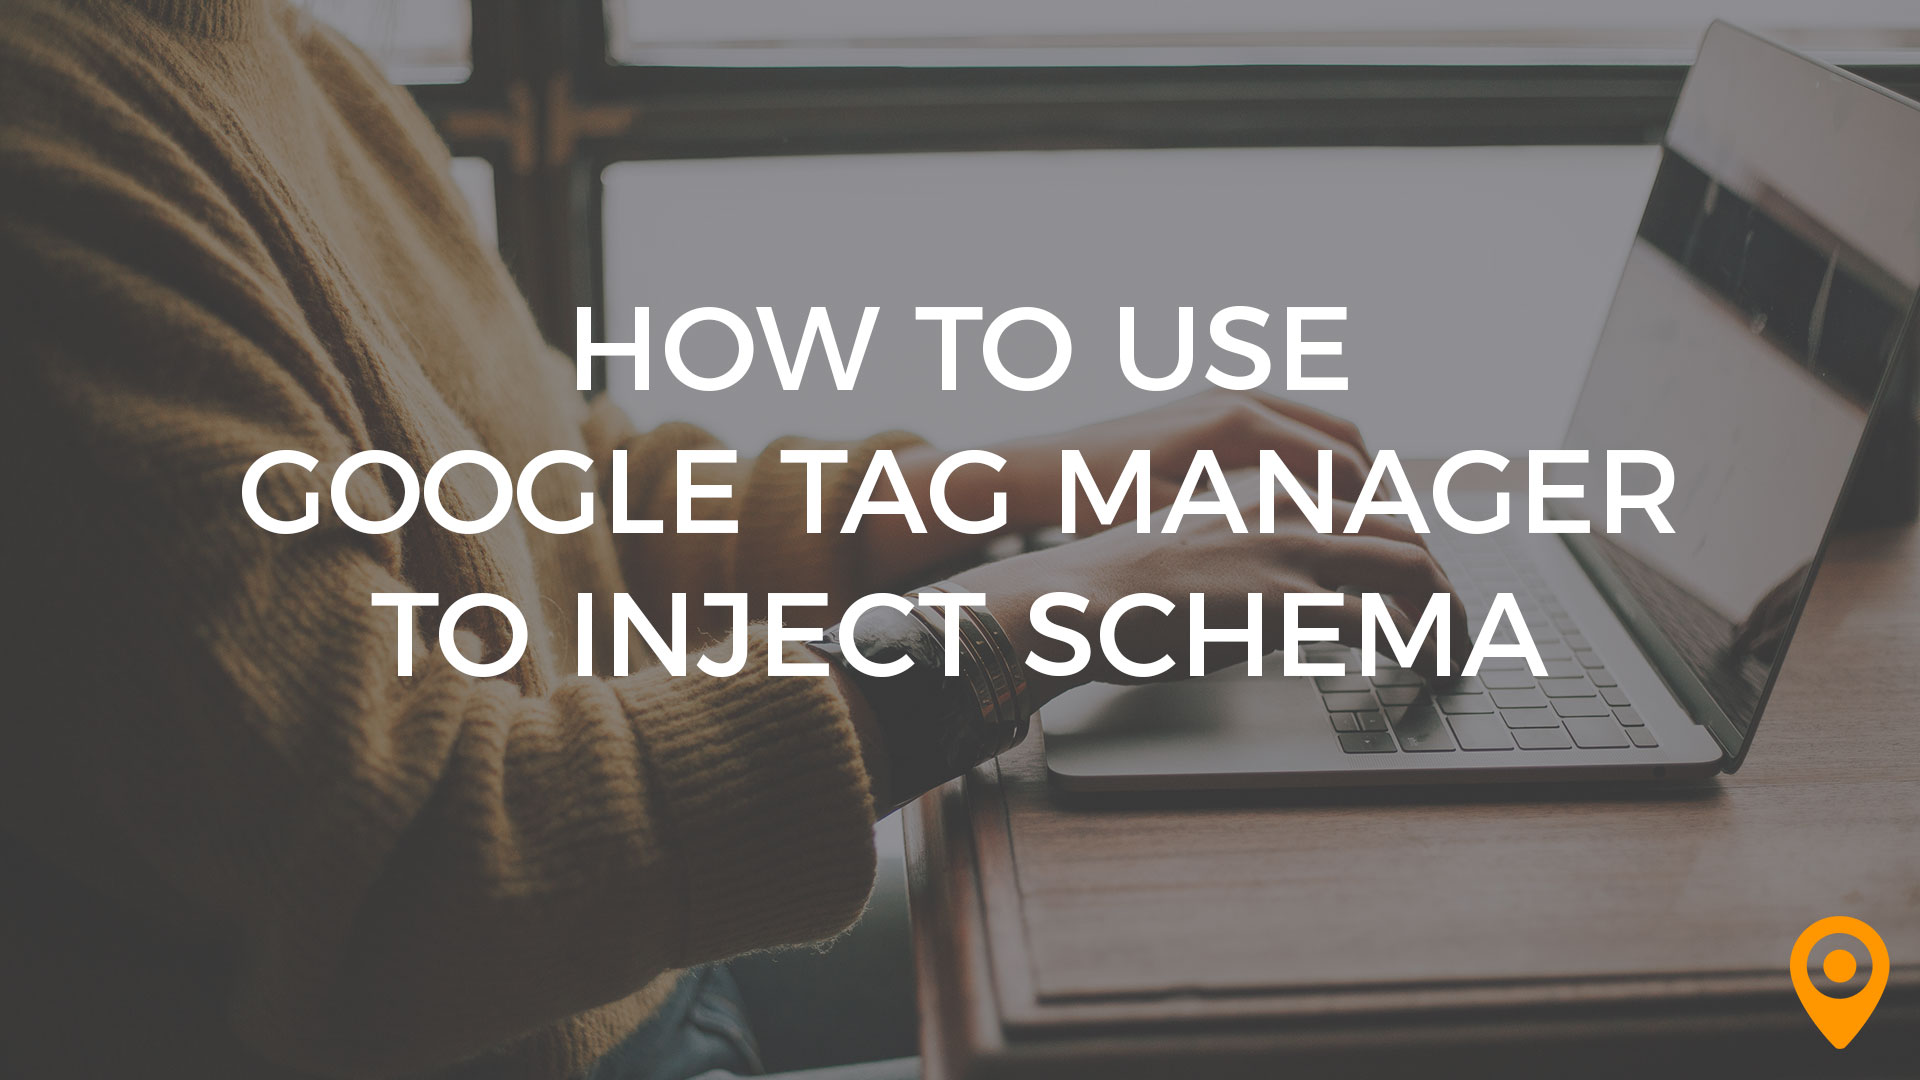 How to Use Google Tag Manager to Inject Schema